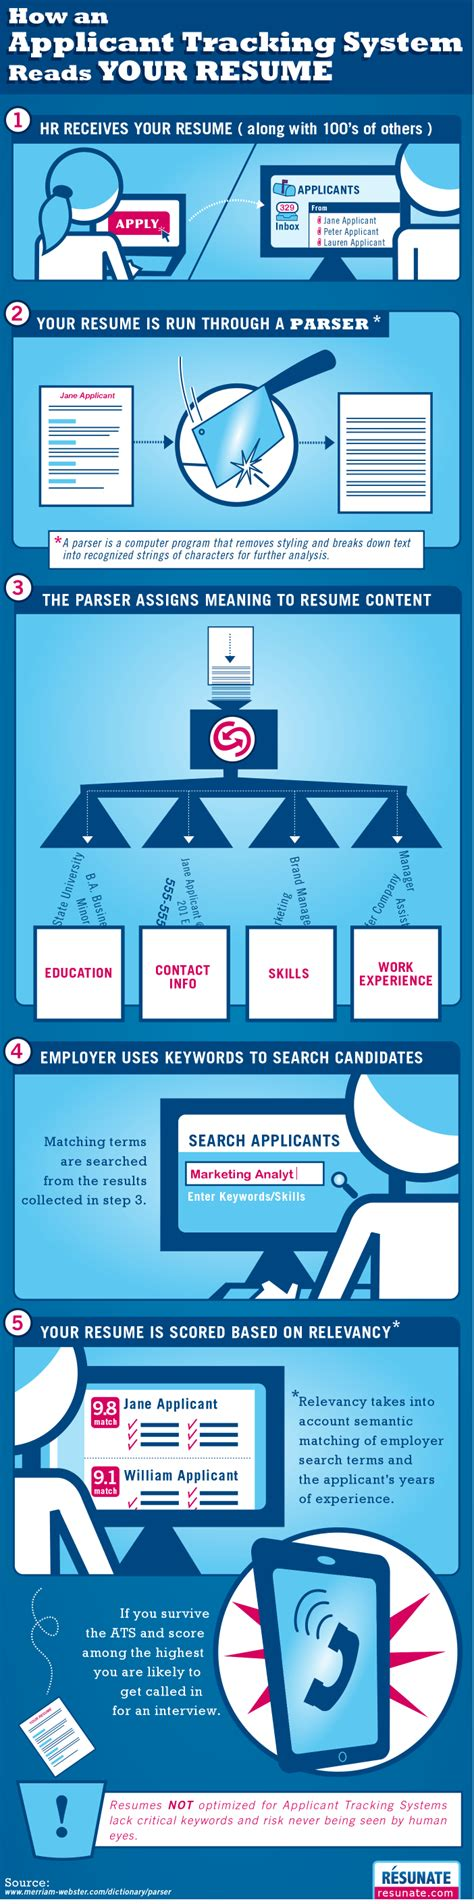 potential employees how to use applicant tracking